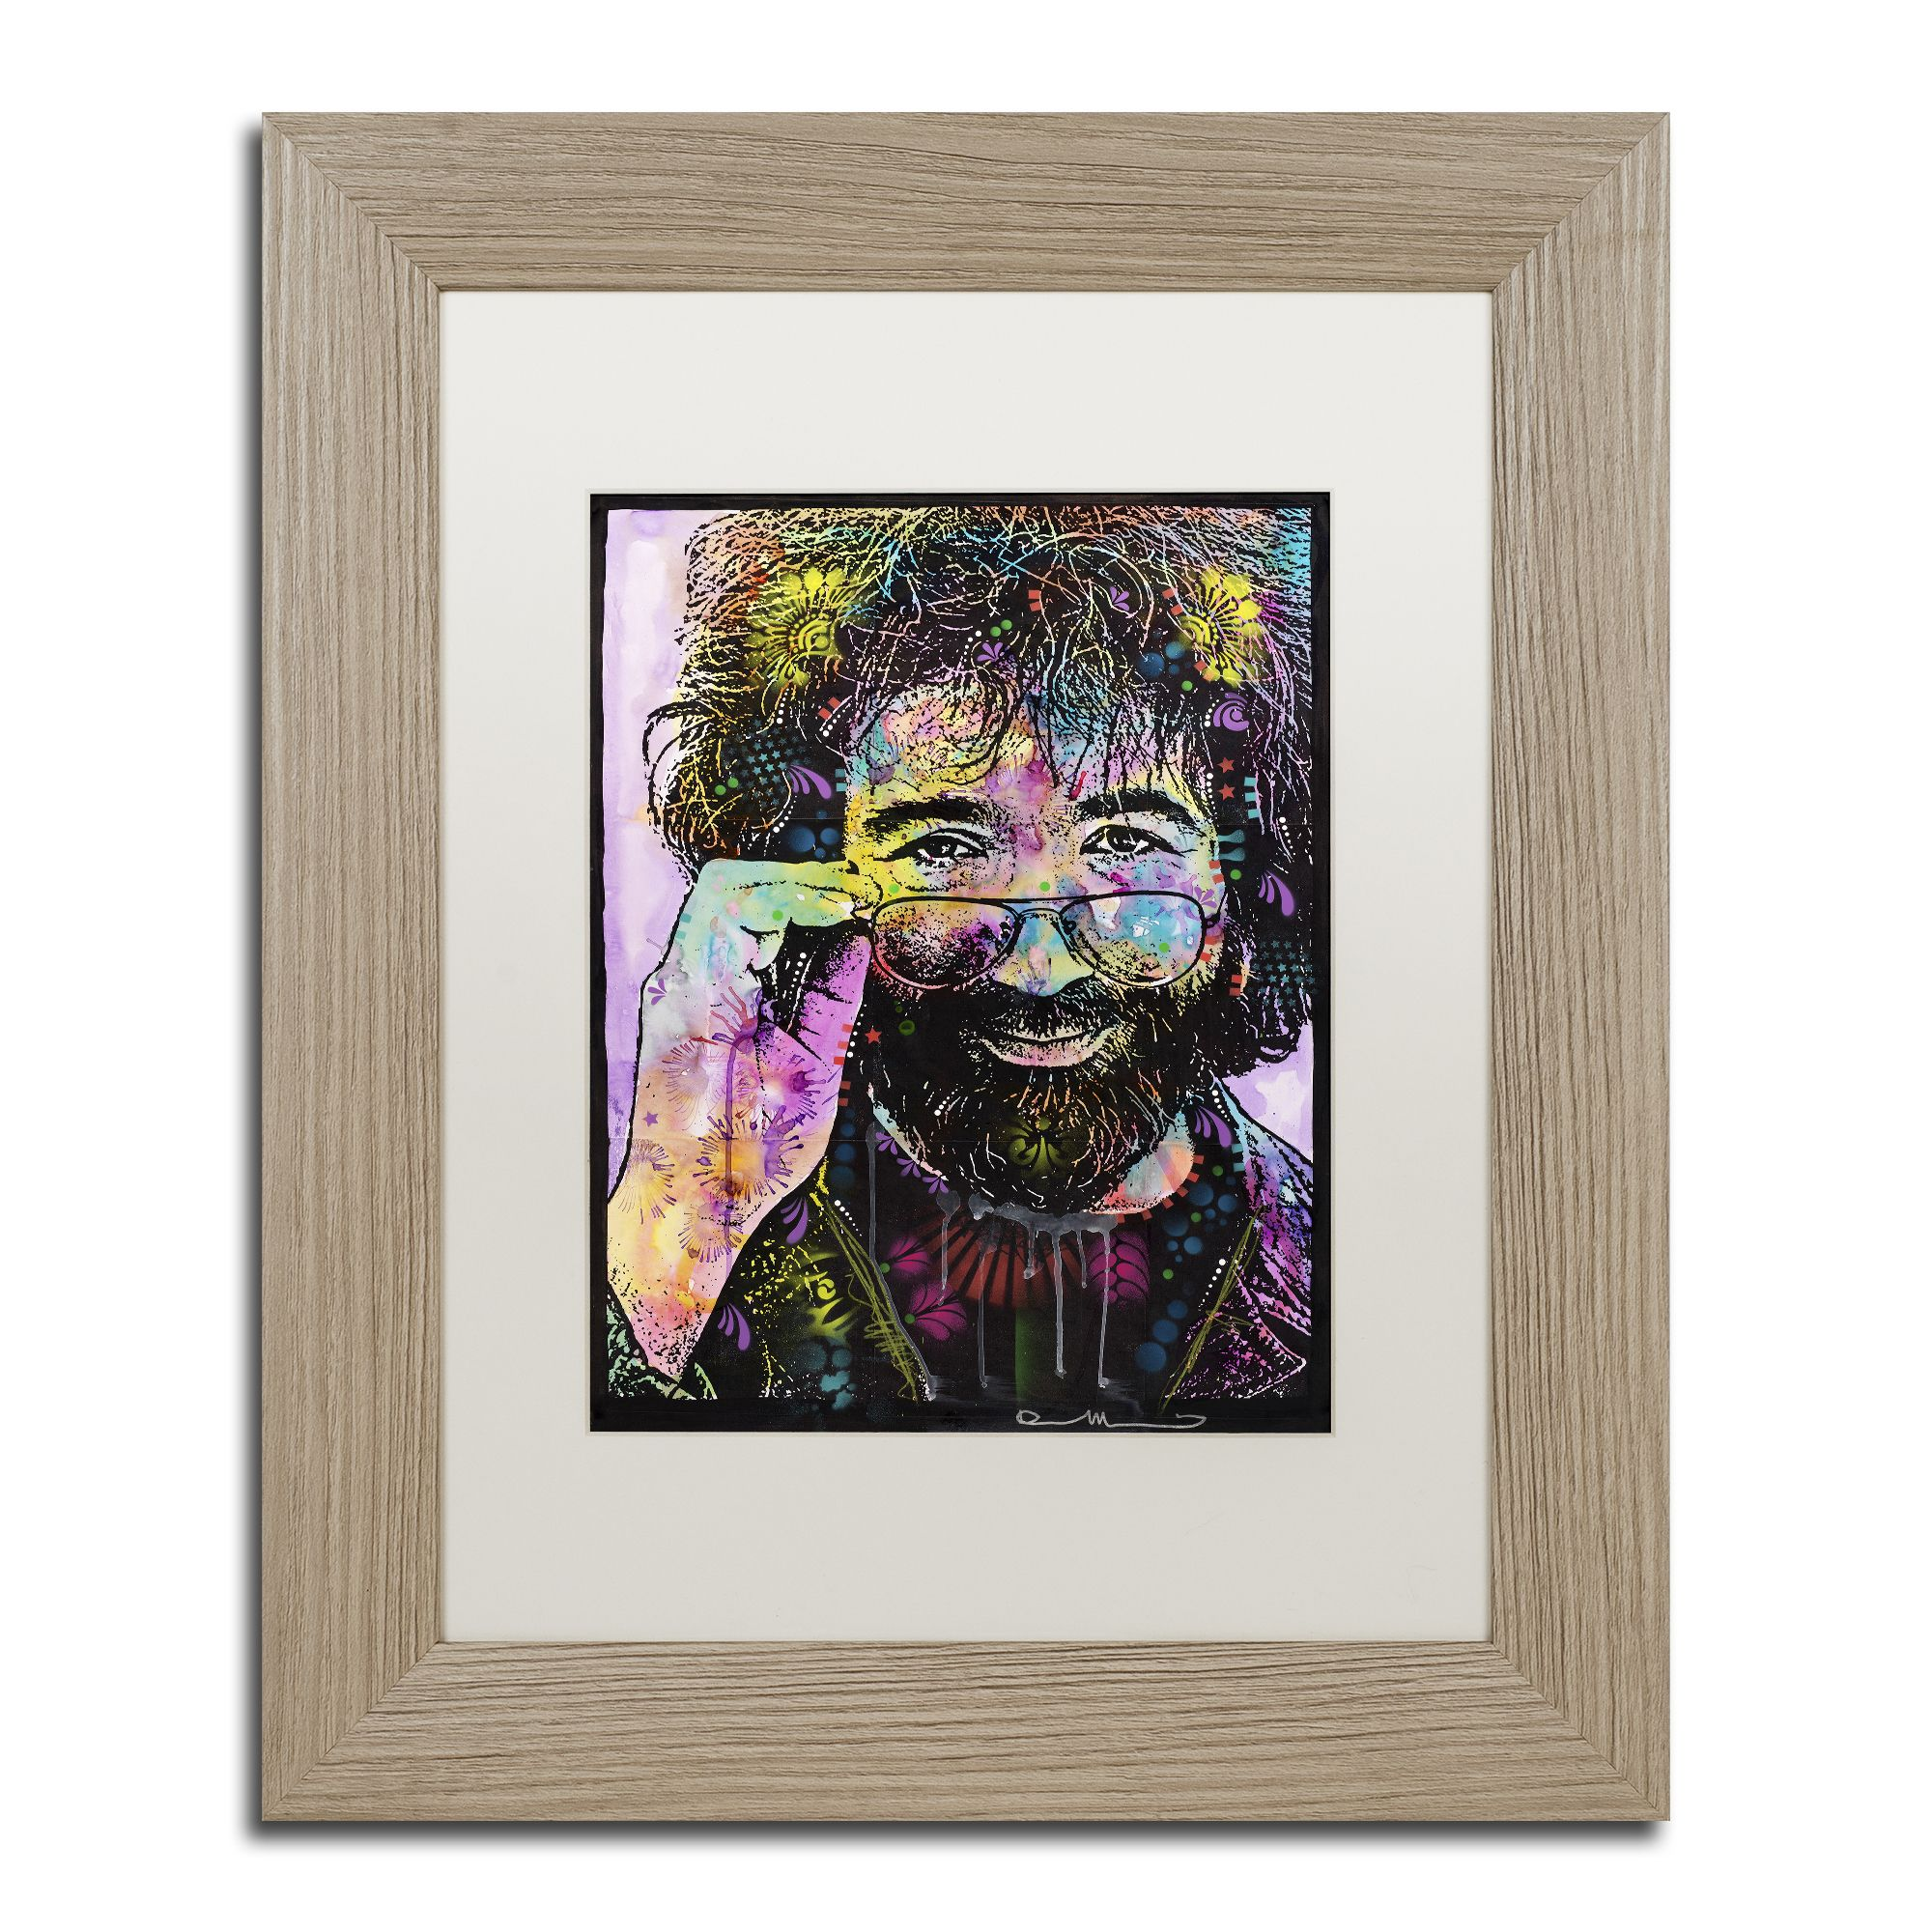 Trademark Art Jerry Garcia By Dean Russo Framed Graphic Art